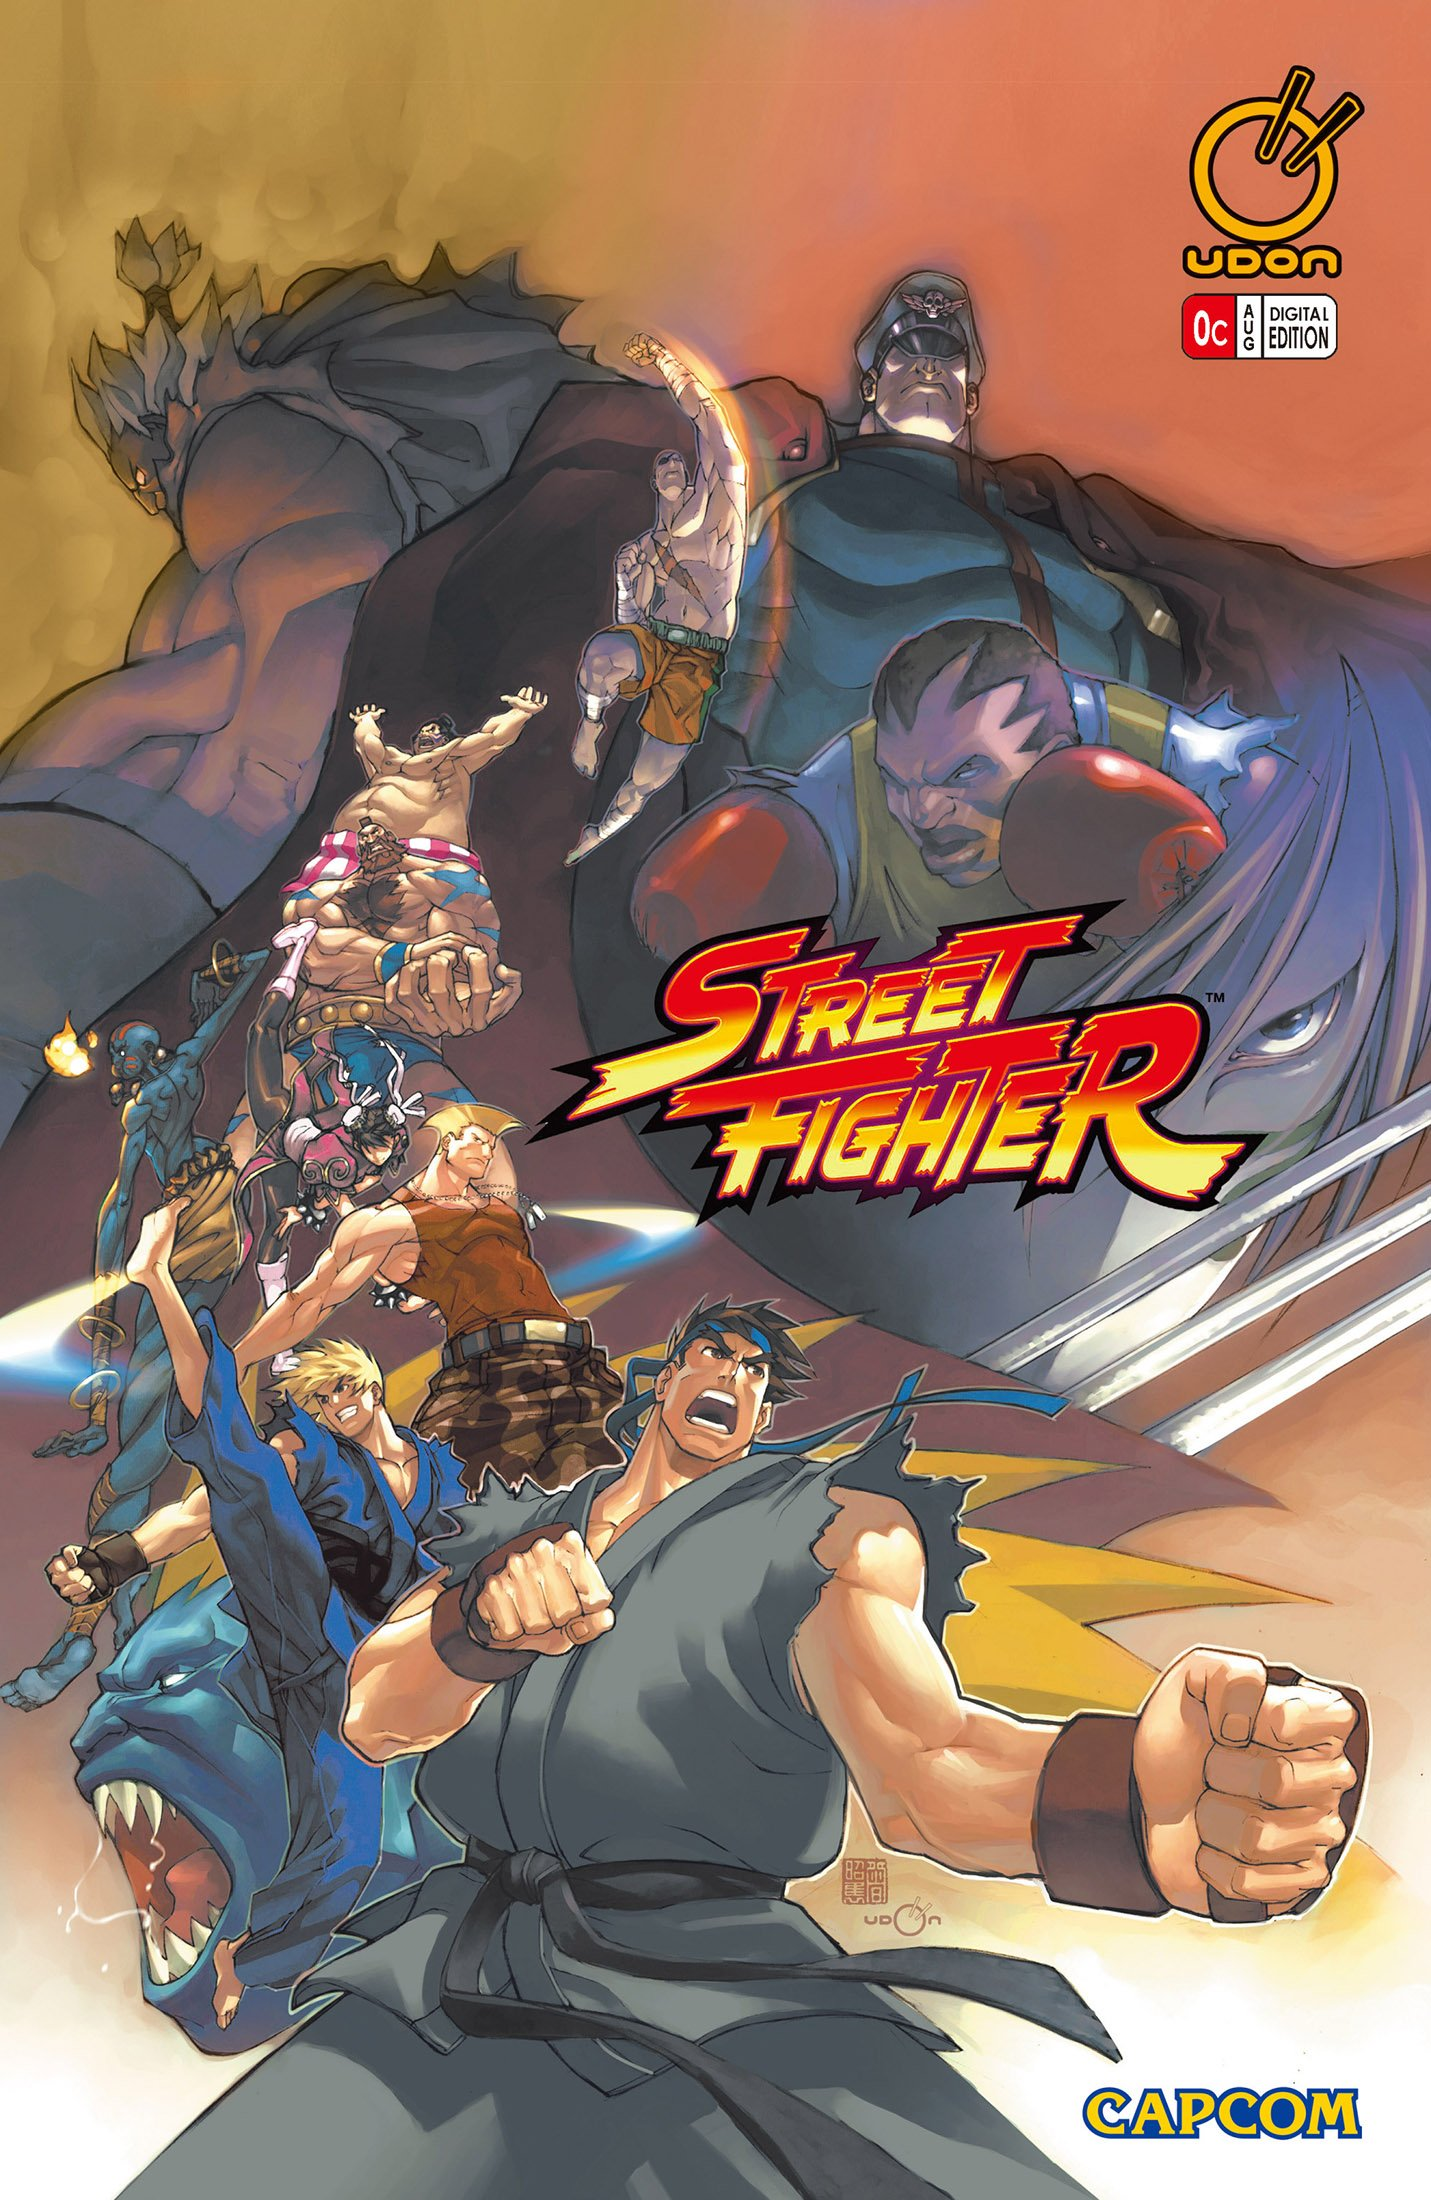 Street Fighter Vol.1 000 (August 2003) (cover c)